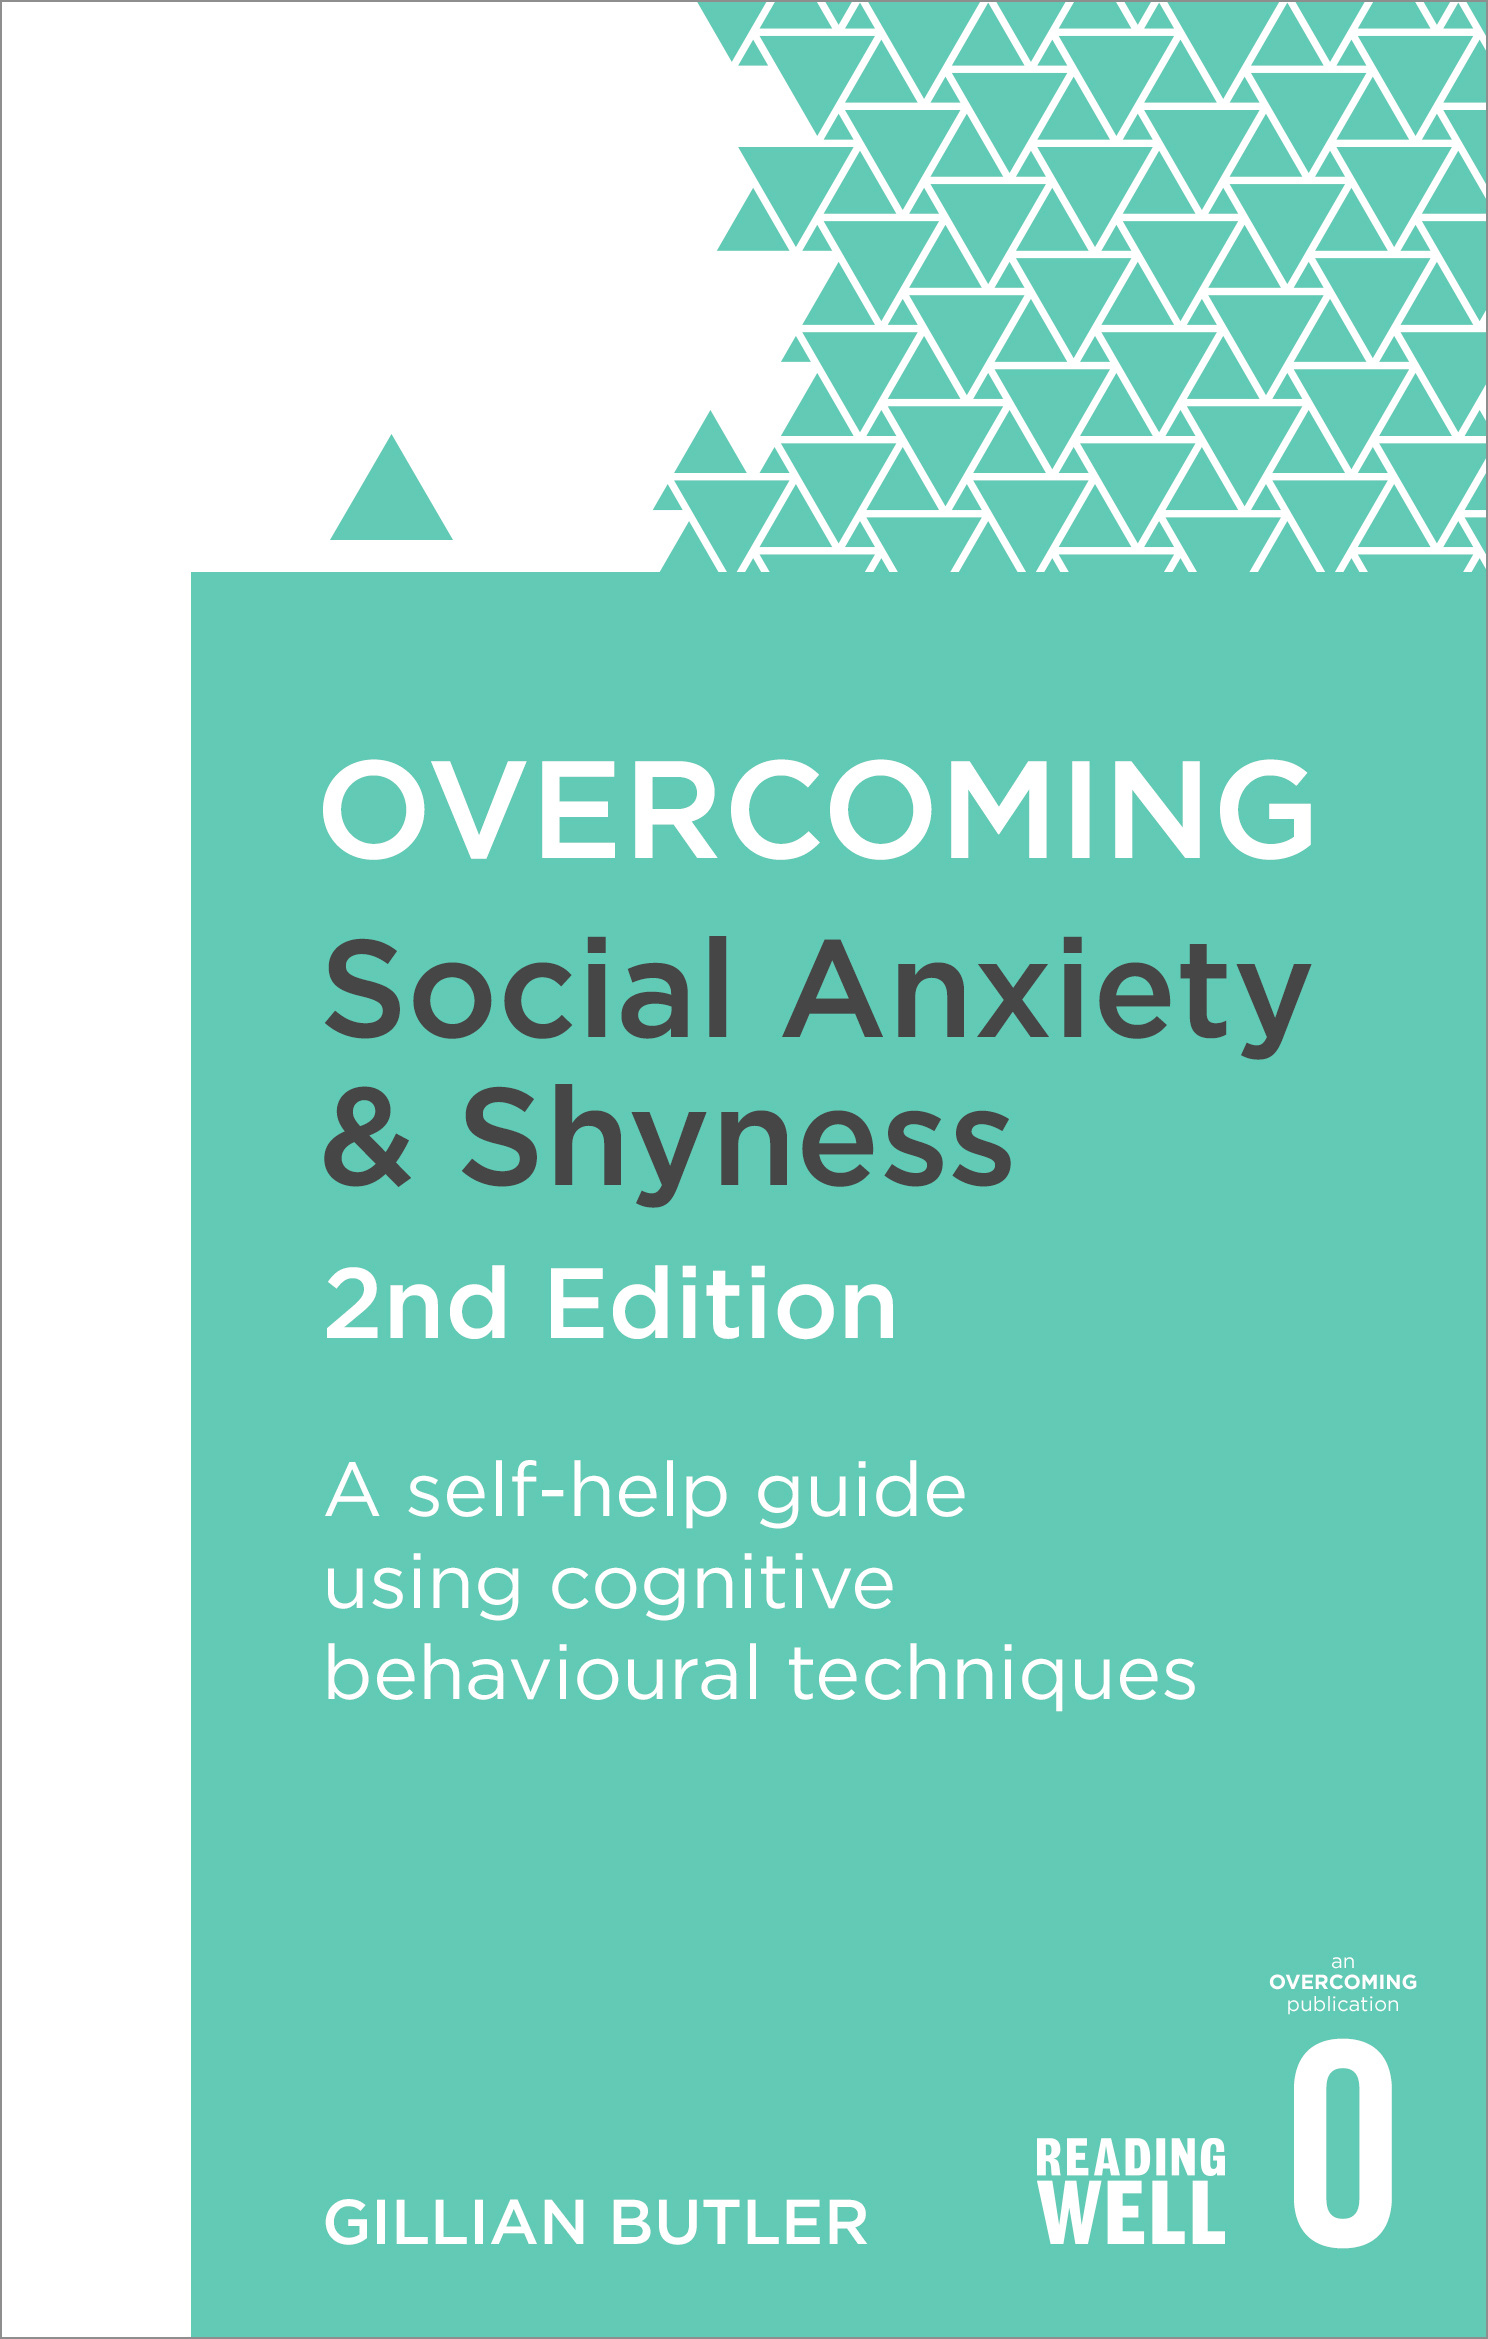 Overcoming Social Anxiety and Shyness, 2nd Edition: A self-help guide using cognitive behavioural techniques